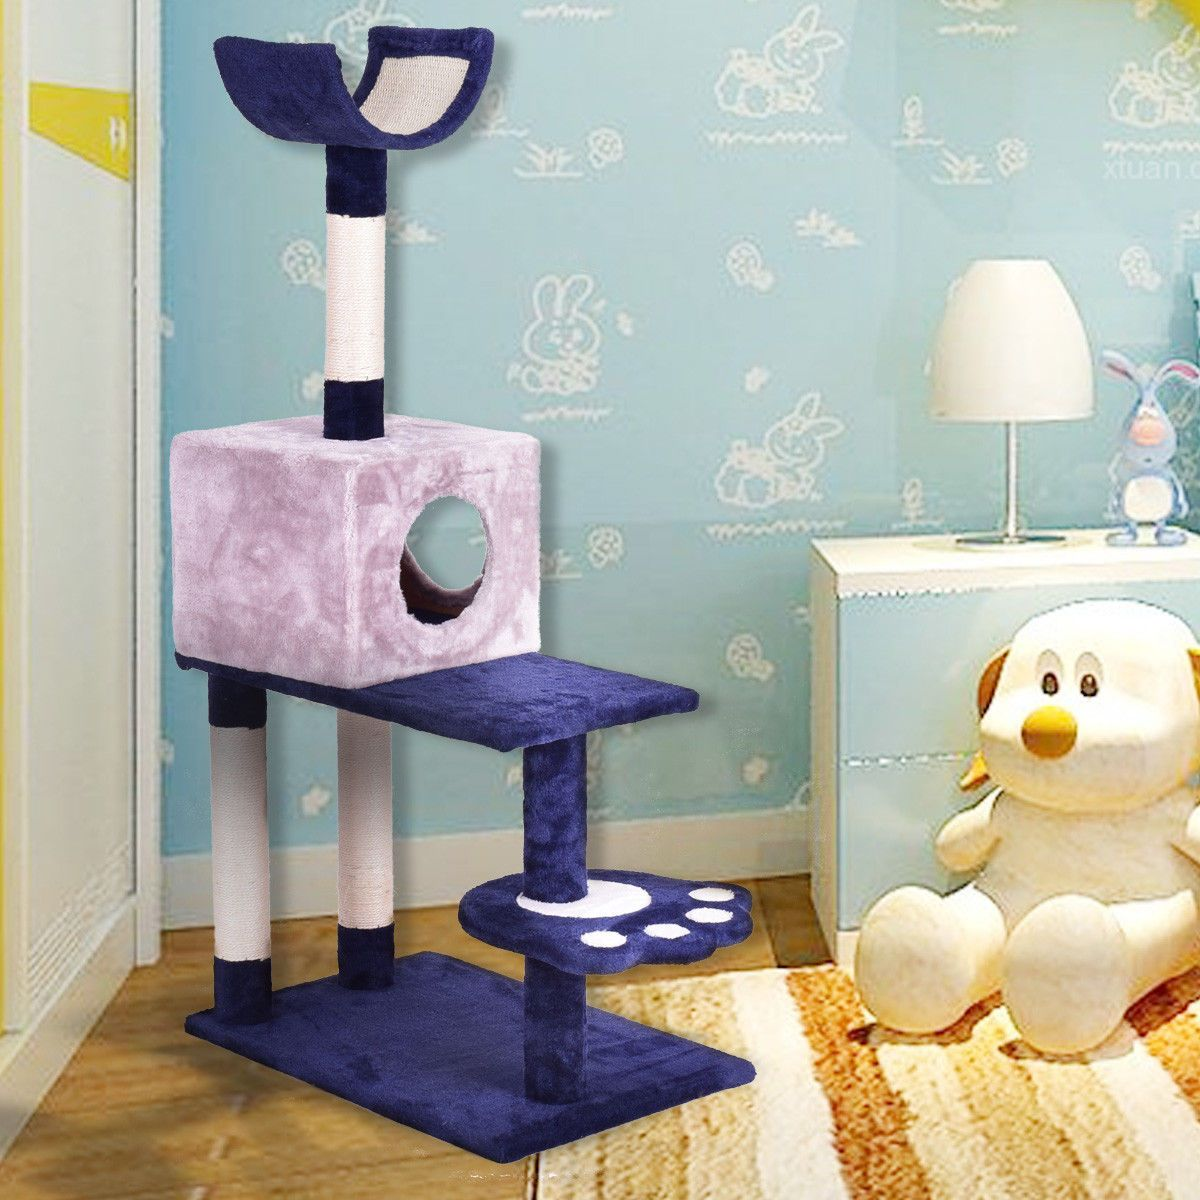 This New Brand Cat Tree Condo Furniture Scratch Post Pet House With  Comfortable Fabrics In Exquisite Design Is A Magic Castle, Park, Room For  Your Cats.